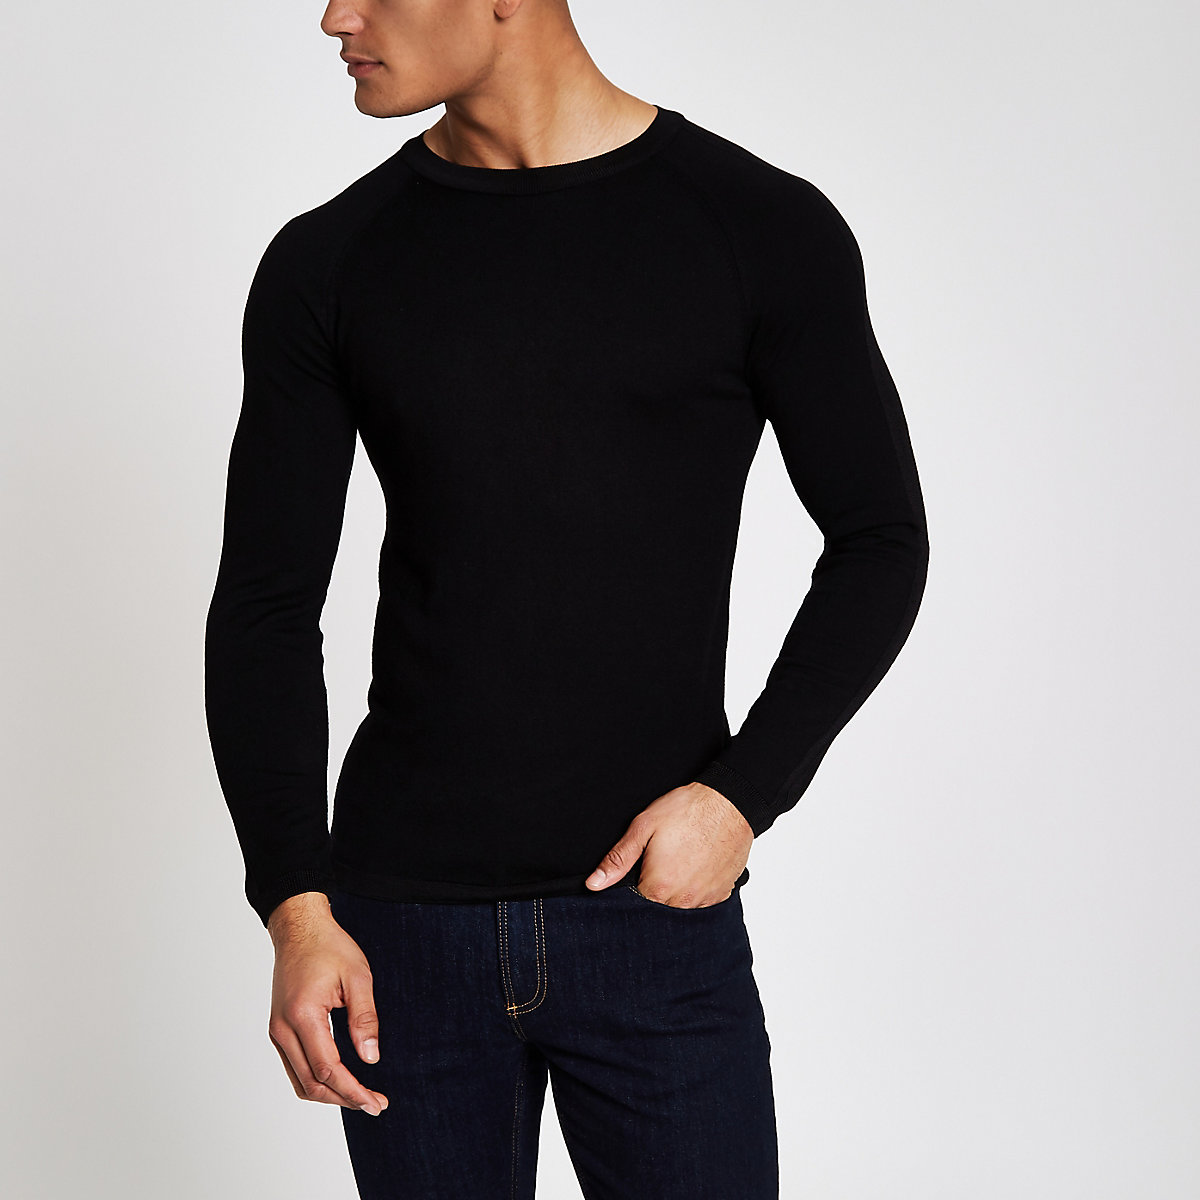 Black muscle fit crew neck sweater